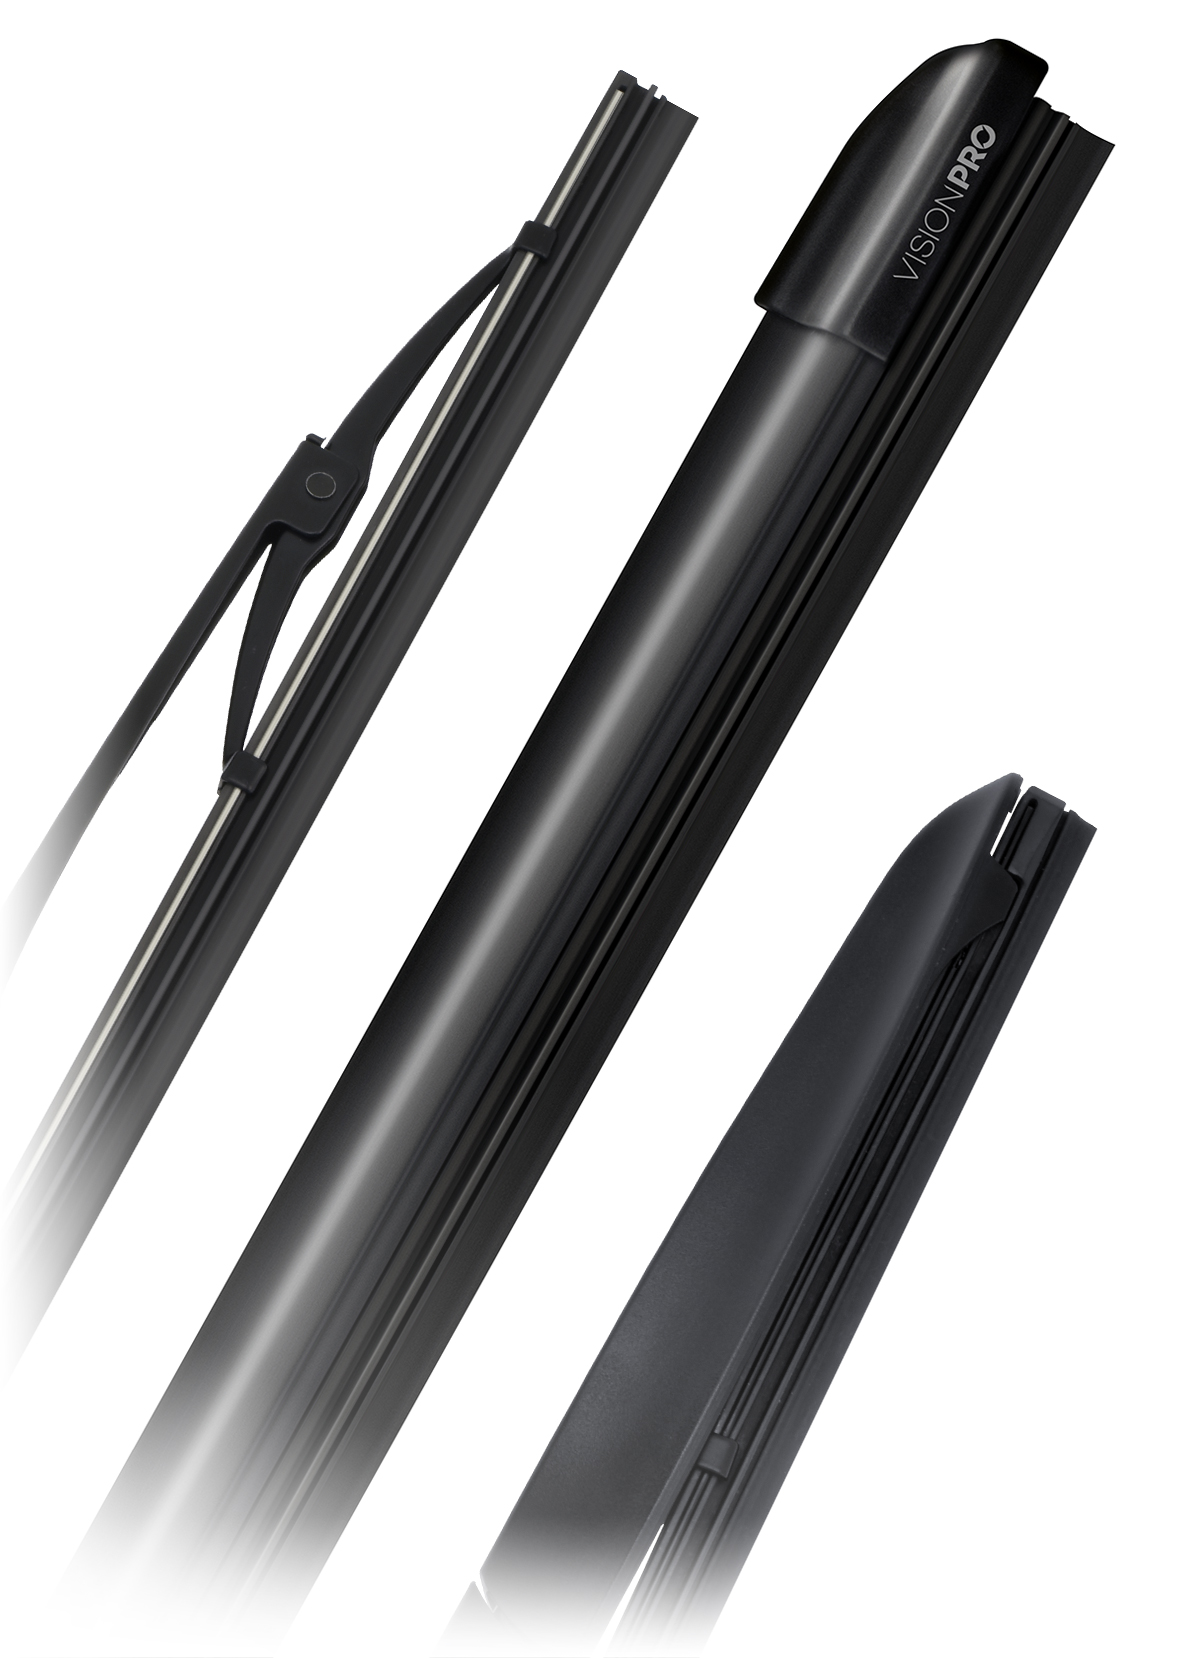 Wiper Blades - Flat, conventional and hybrid